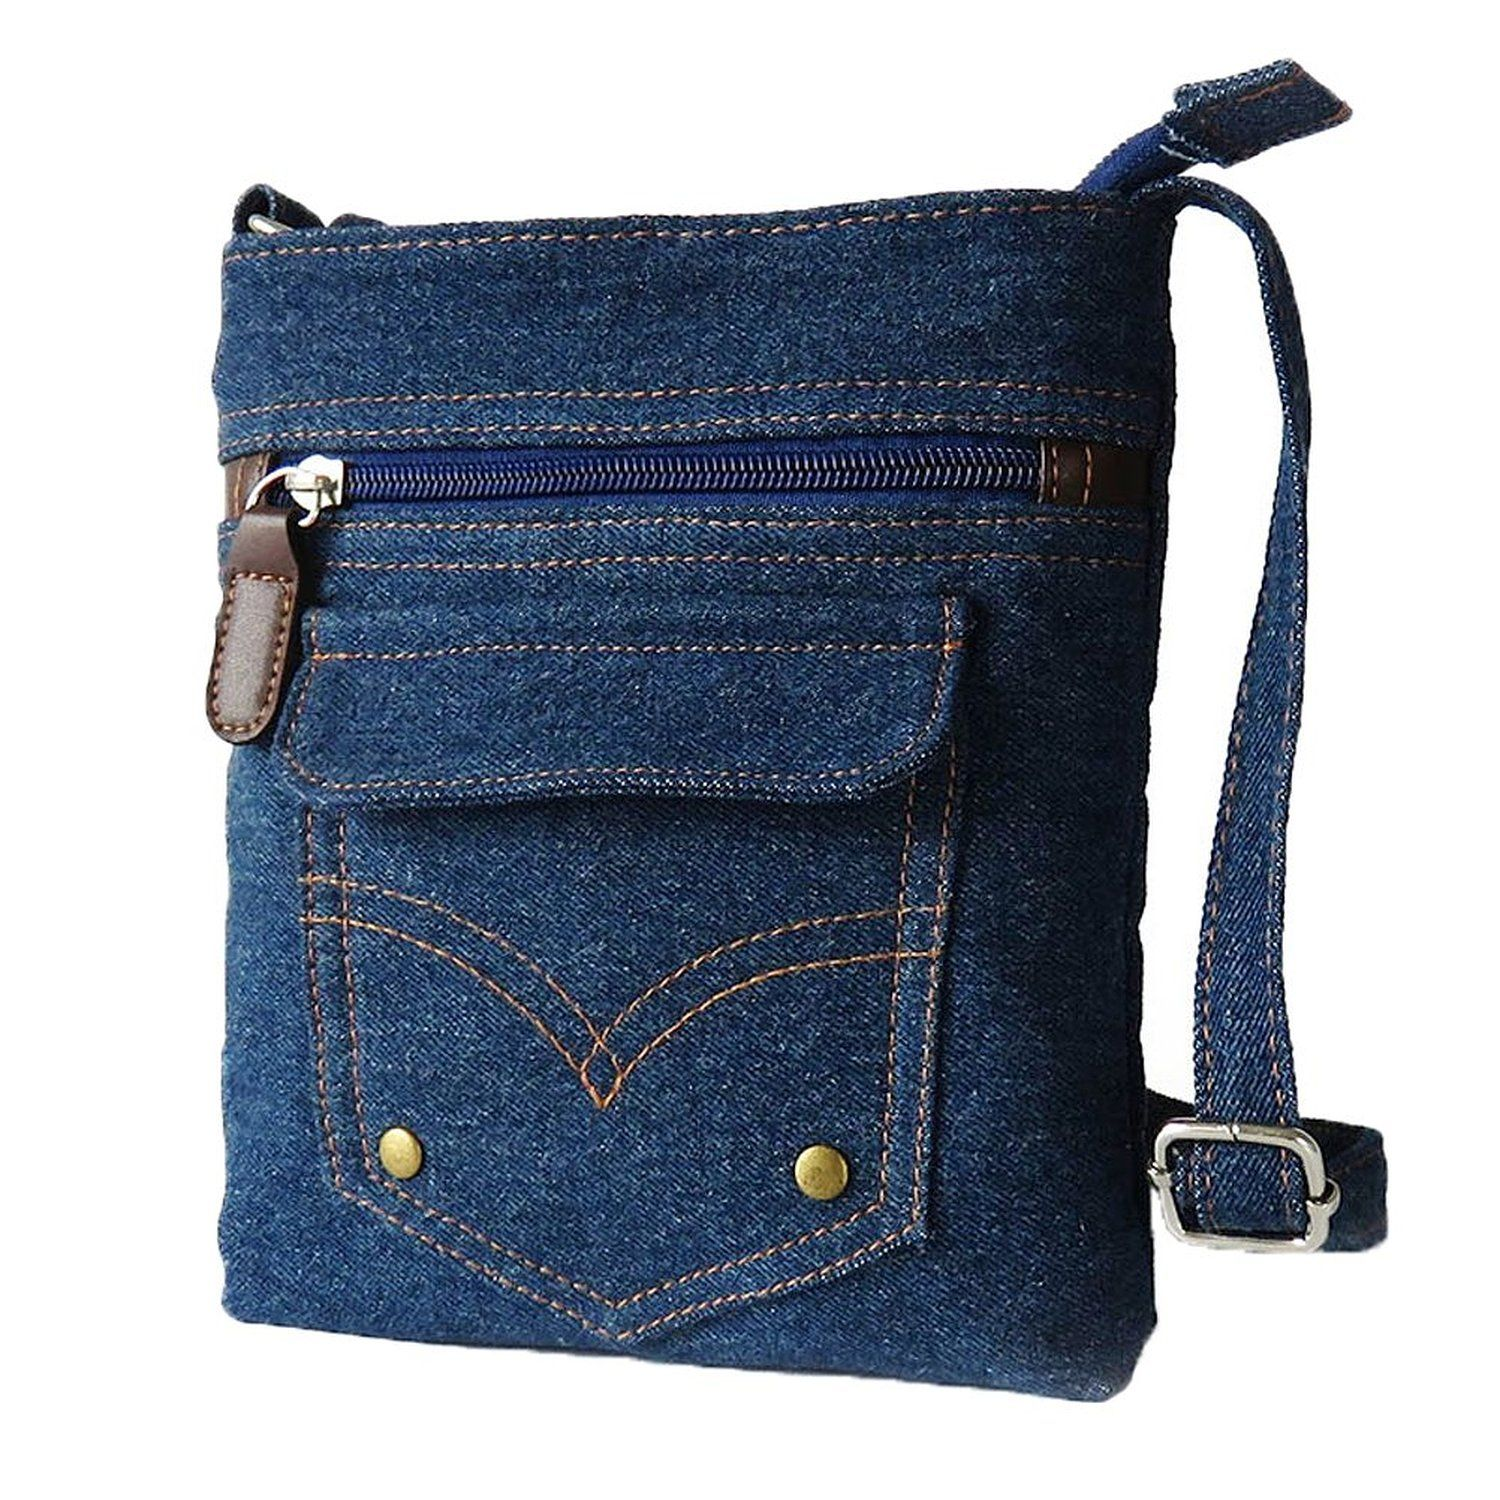 Can suggest Cross body messenger bag this phrase